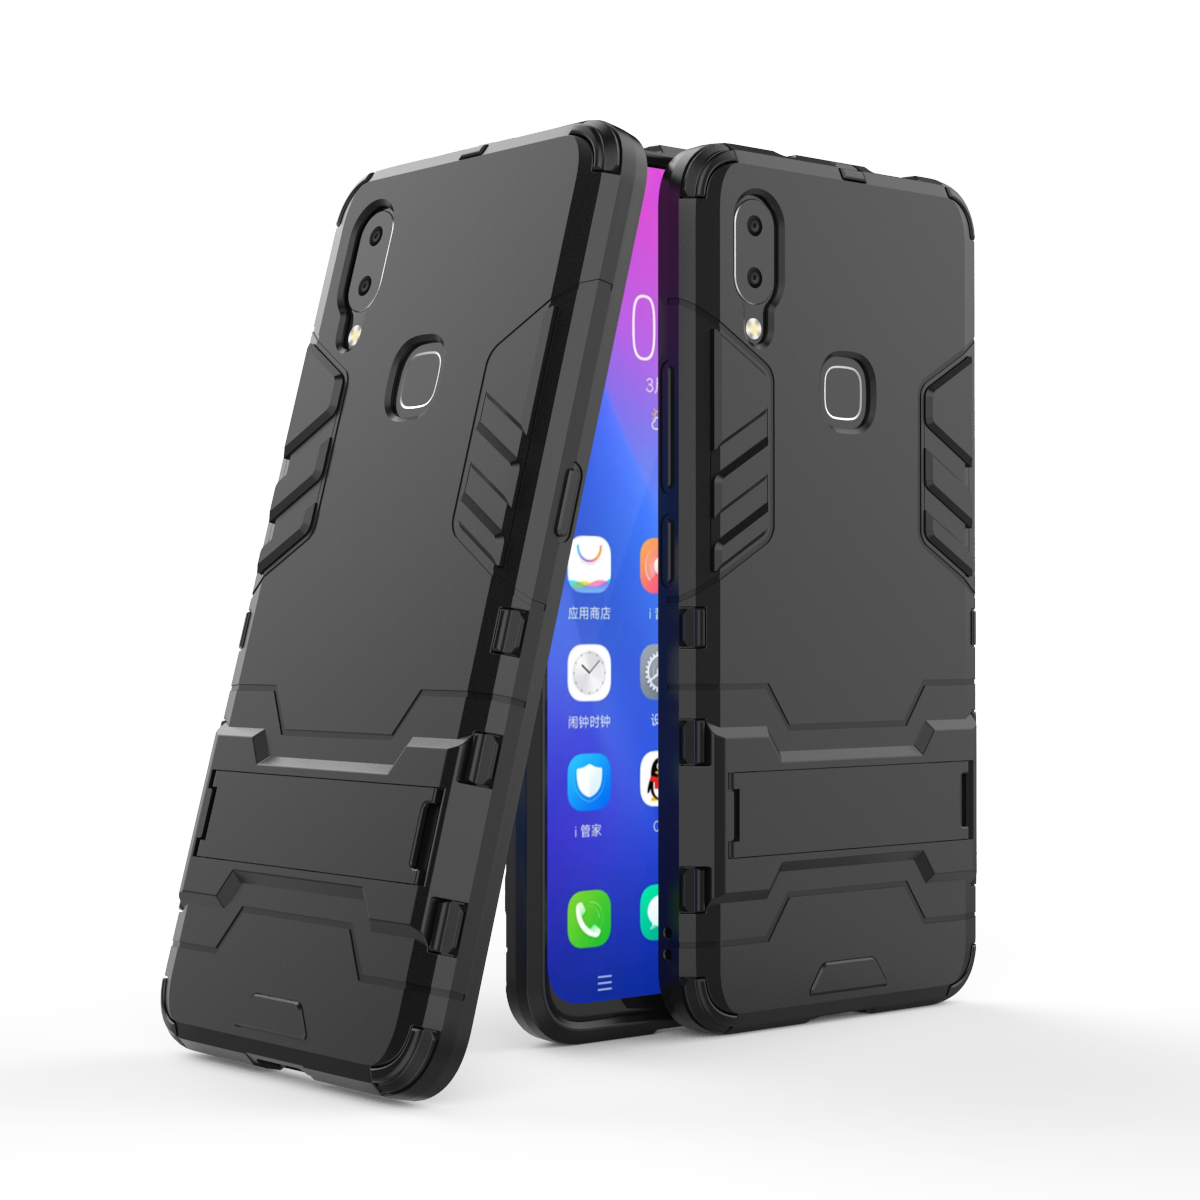 Soaptree Cover For Vivo Y83 Pro Case Luxury Robot Armor Rubber Phone Case For Vivo NEX A Back Cover For BBK Vivo Y83 Pro Shell